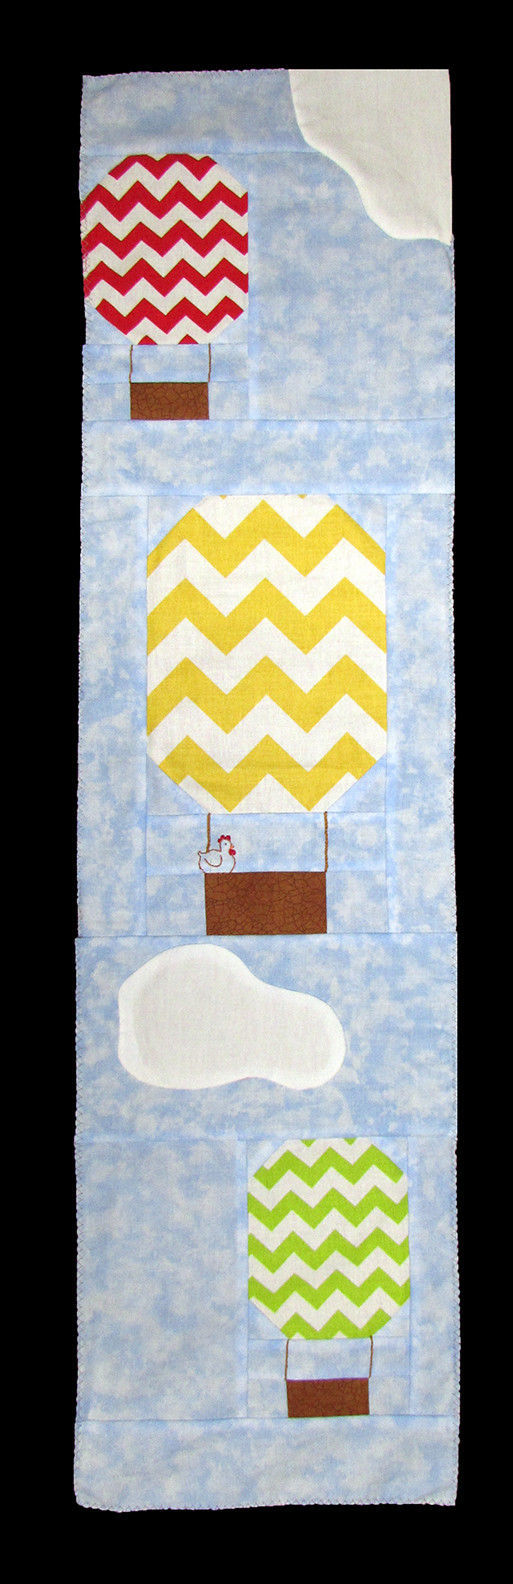 "Row by Row 2017 ""On the Go"" Hot Air Balloon Quilt- Sold by the Kit M401.07 (Z) - $12.97"